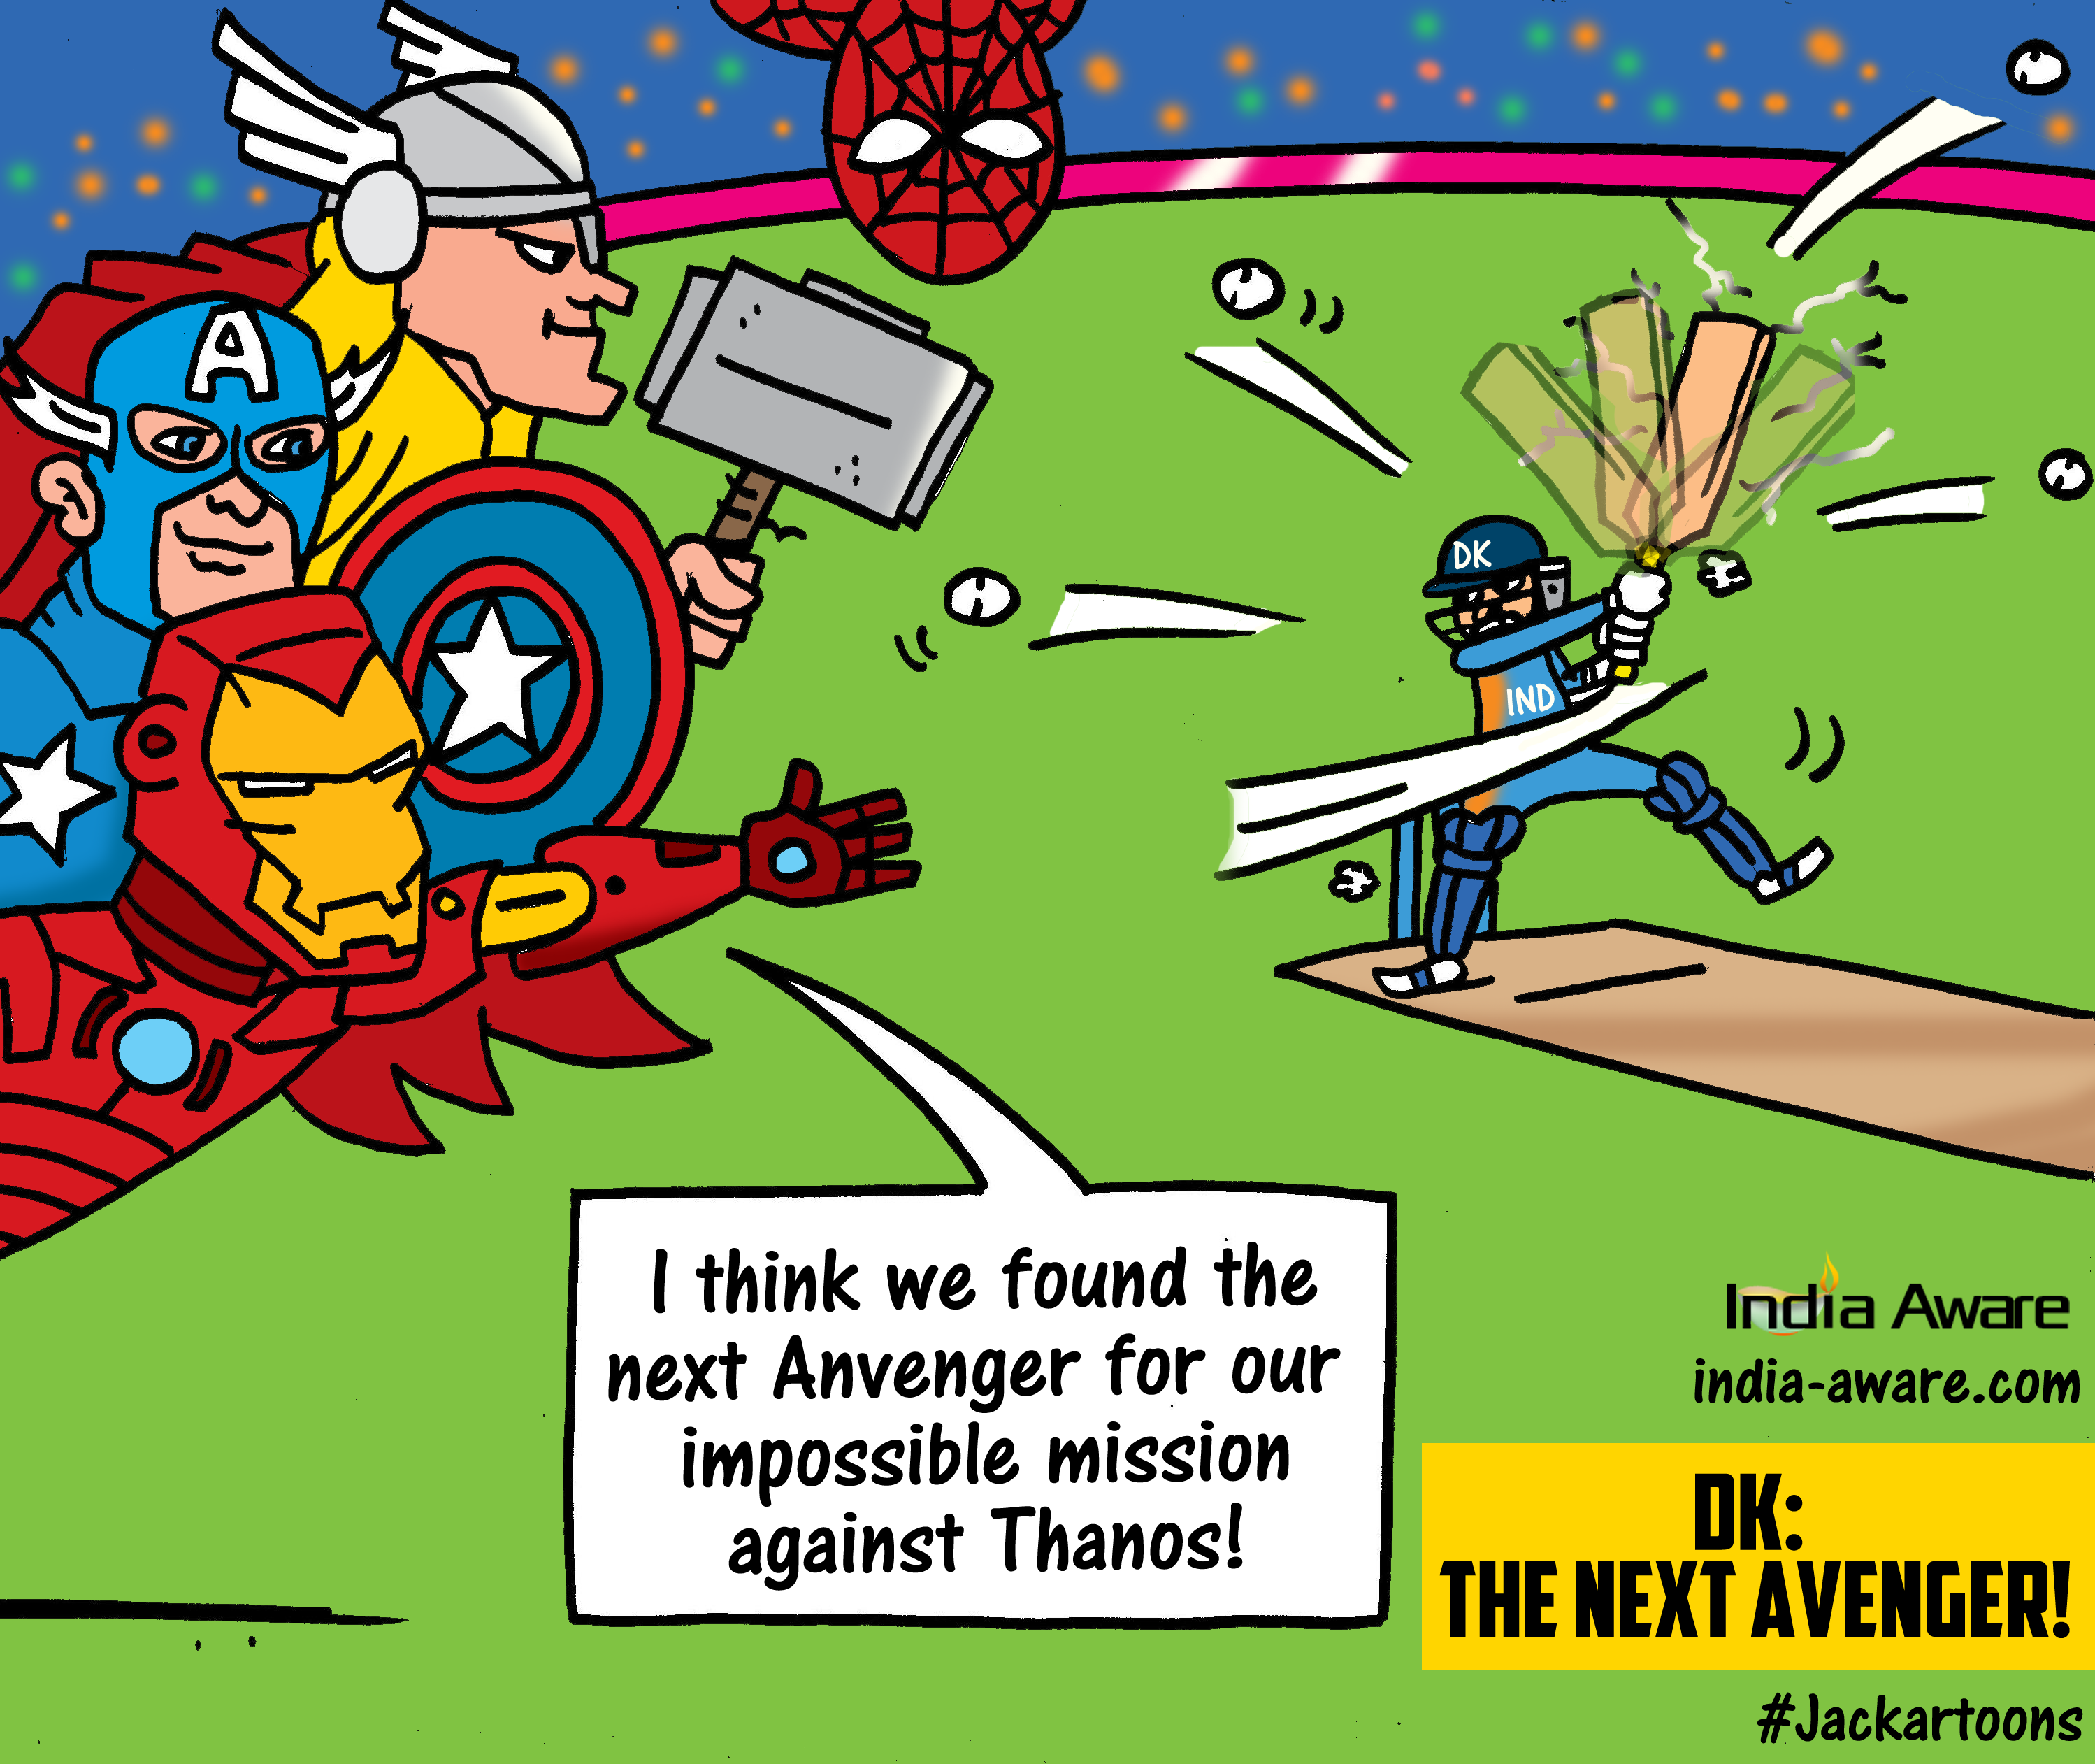 Dinesh Karthik: The next Avenger